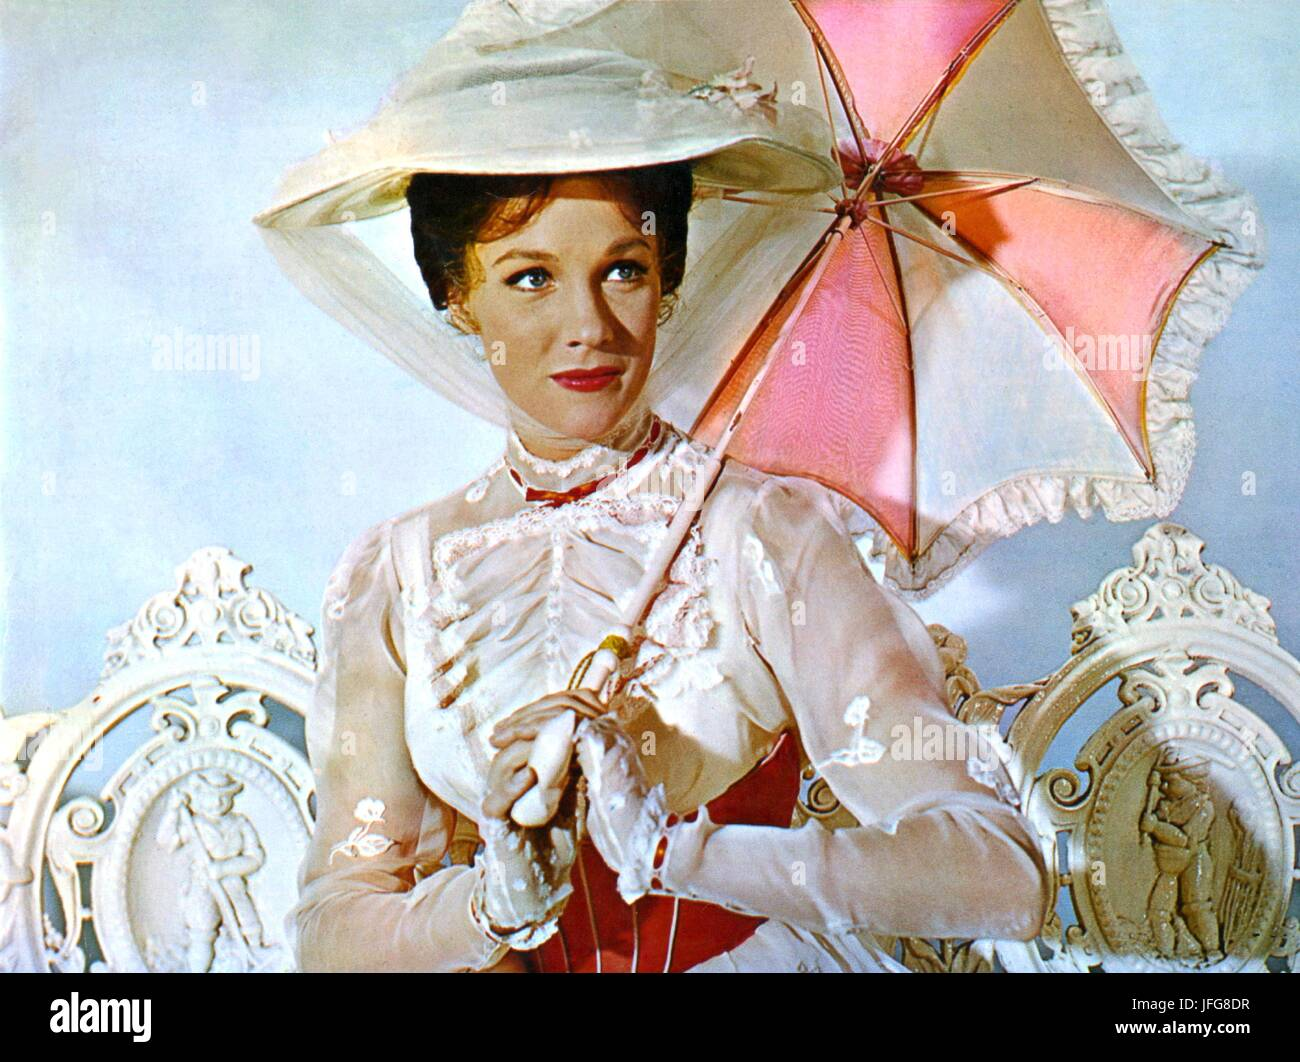 JULIE ANDREWS MARY POPPINS 1964 - Stock Image